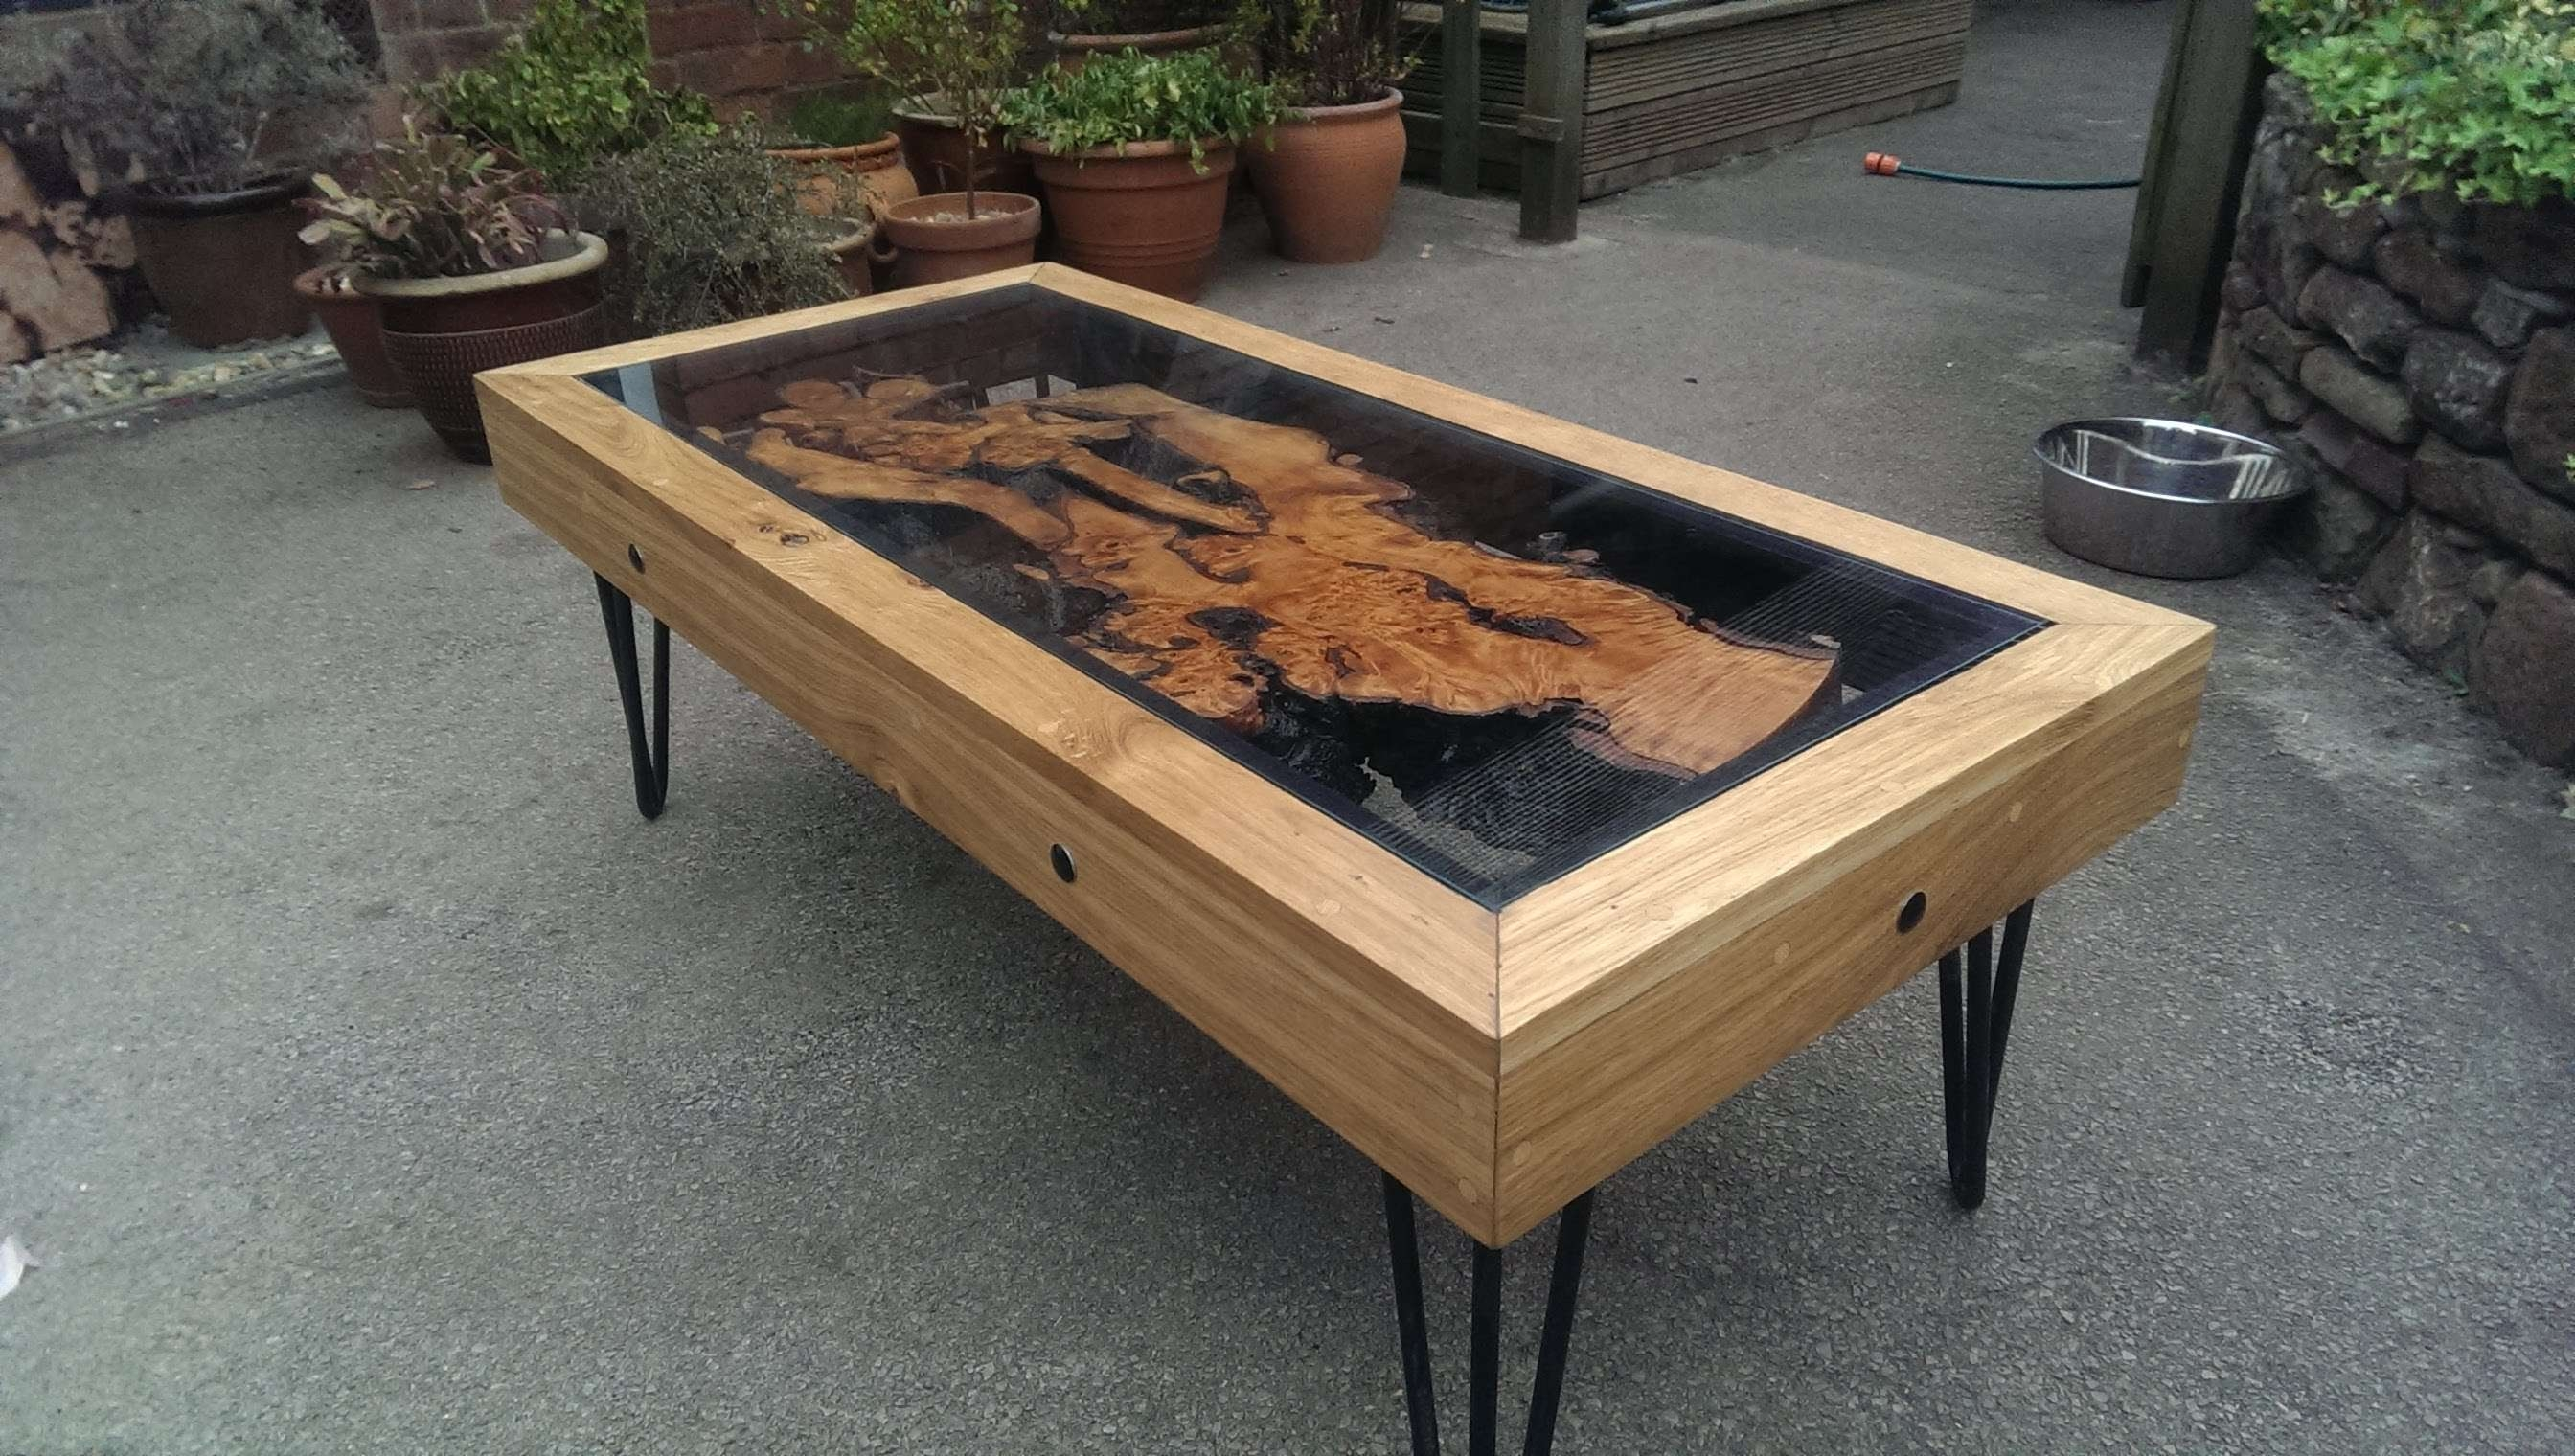 2018 Oak And Glass Coffee Table Inside Tree Root, Oak And Glass Coffee Table: Reborn From Disaster (View 1 of 20)